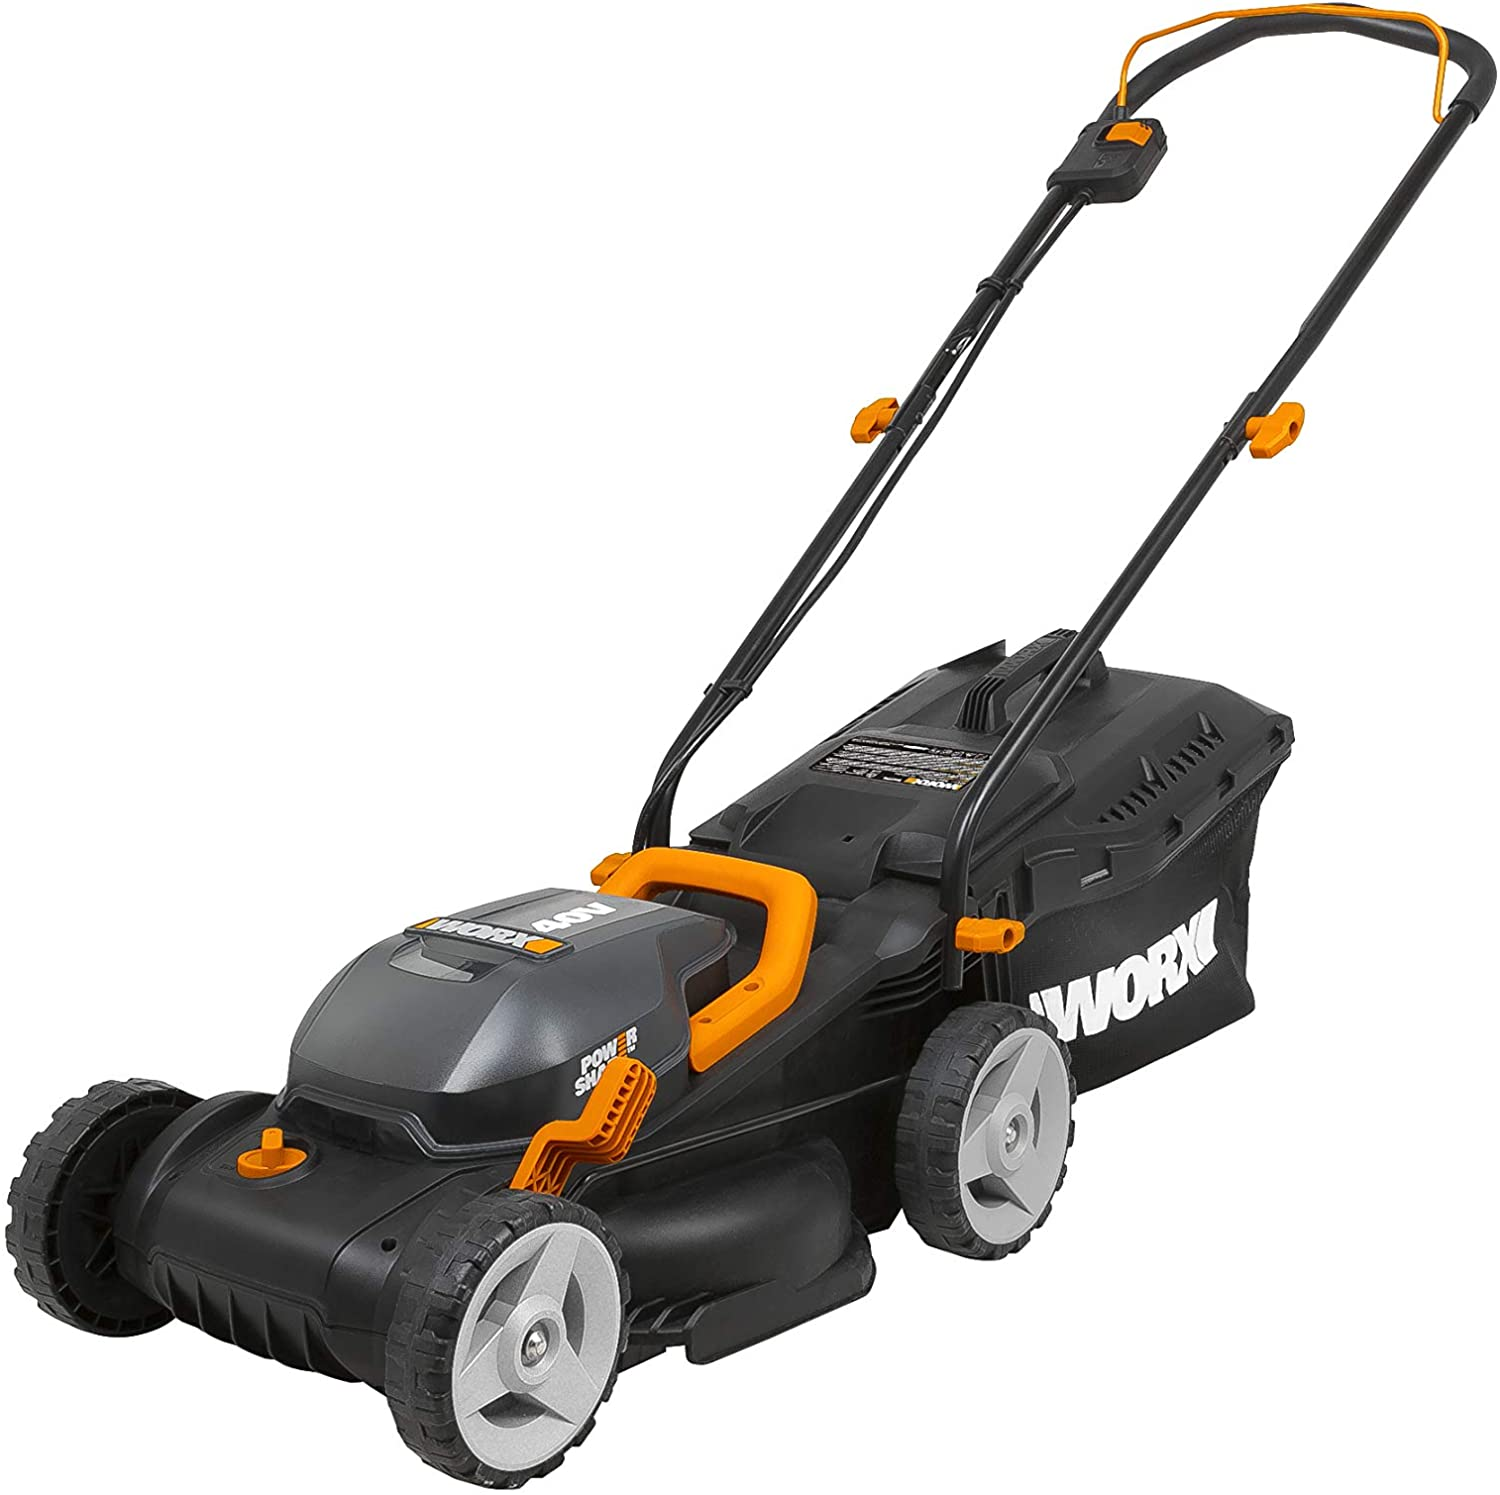 "WORX WG779 40V Power Share 4.0 Ah 14"" Lawn Mower"